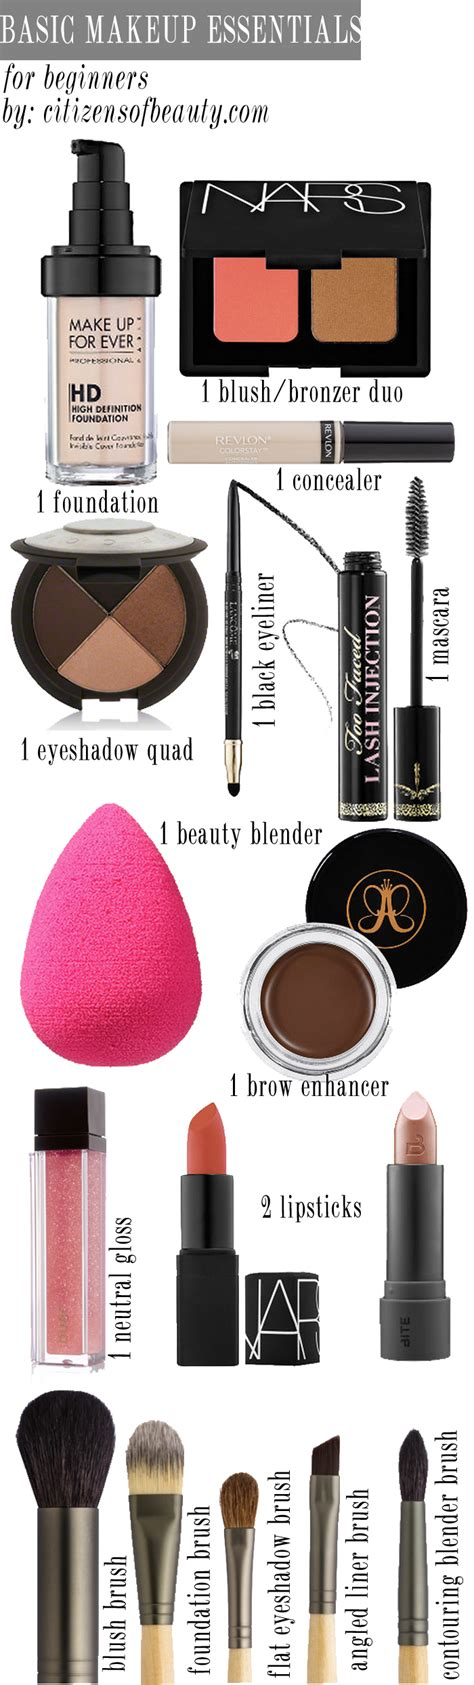 Themakeupgirls 99 Products by Basic Makeup Essentials For Beginners Citizens Of